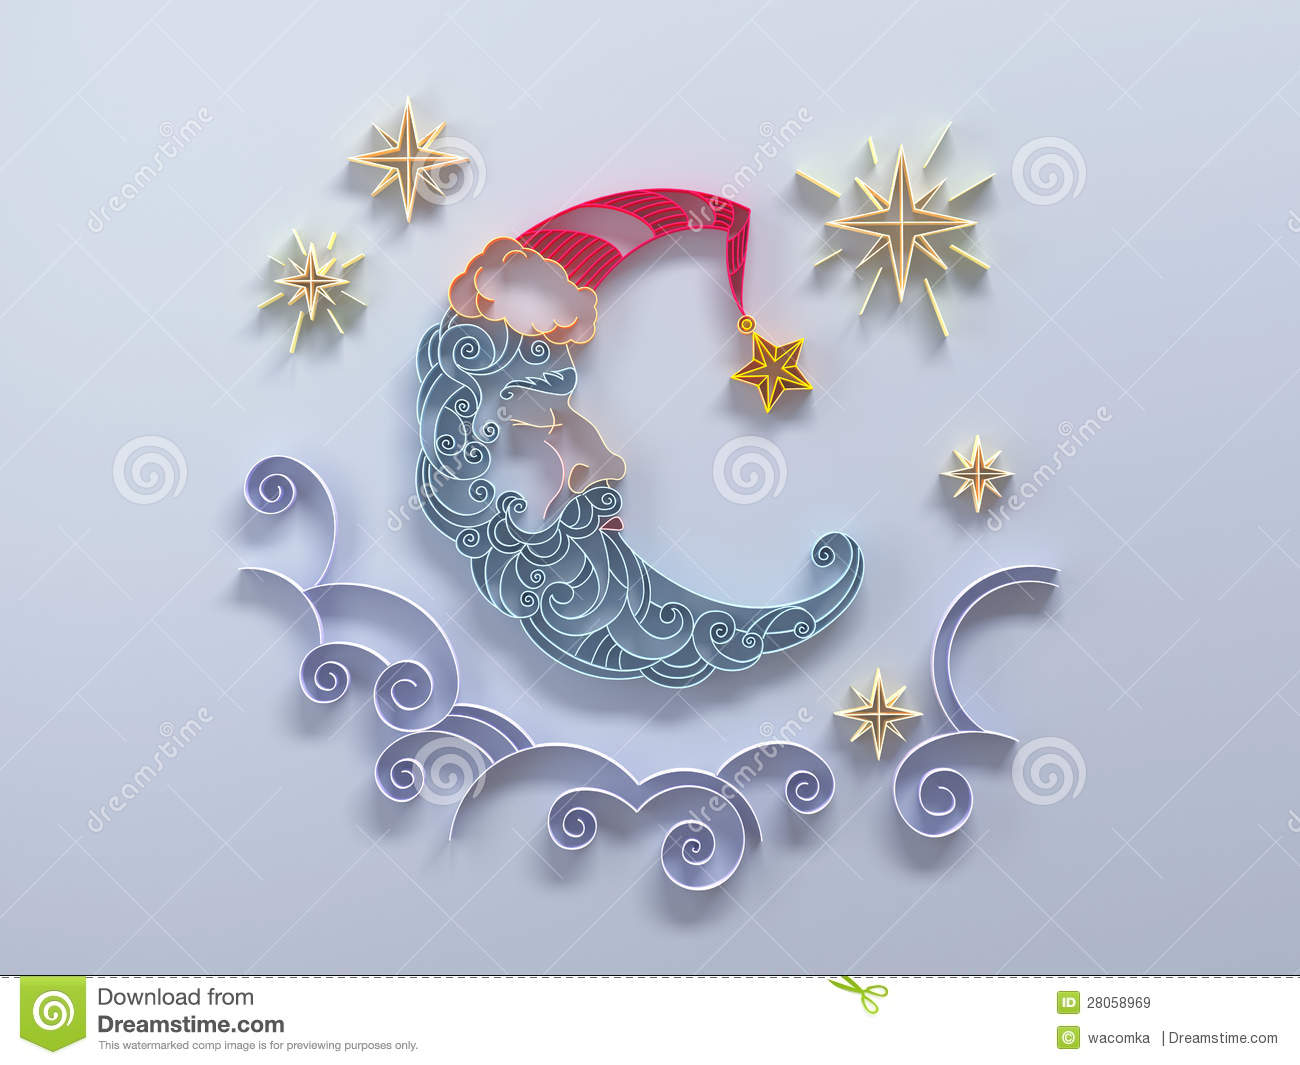 Sleeping moon decoration quilling stock illustration for Decoration quilling